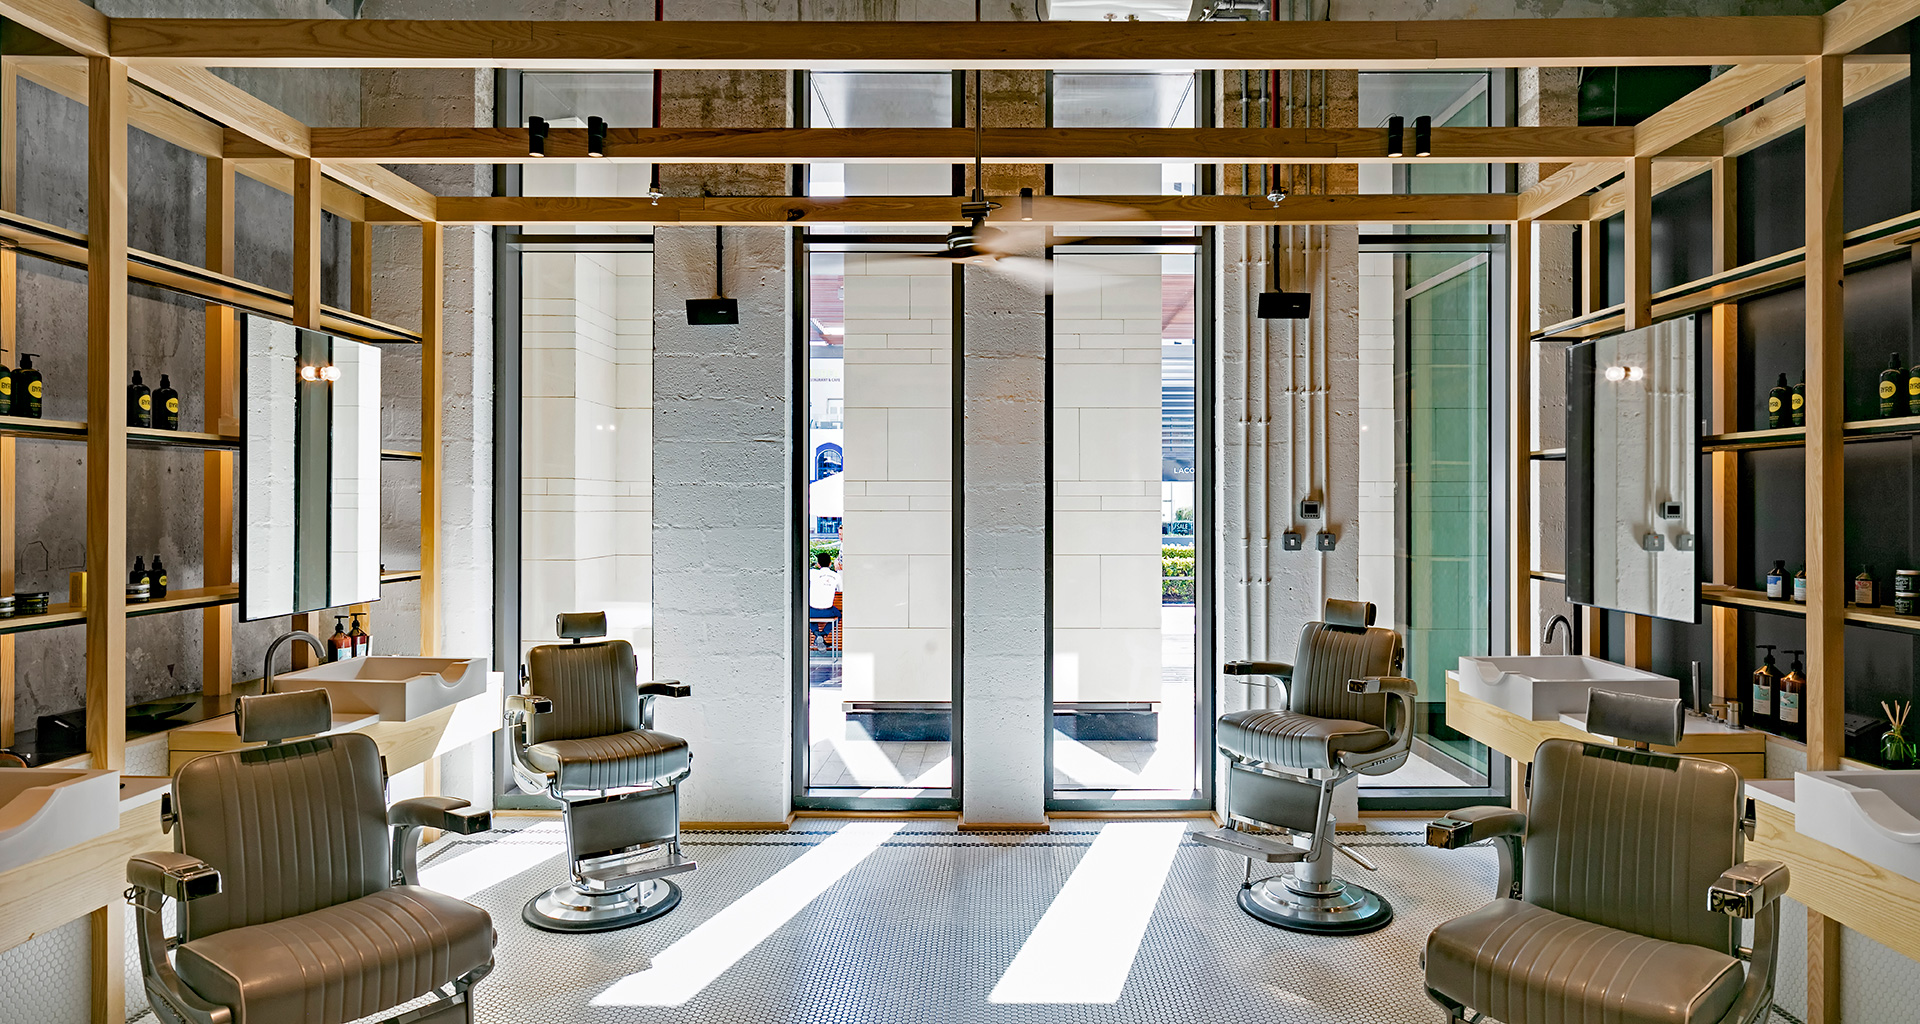 Full height slot windows at the salon let in sunlight| Akin at The Beach| Akin Barber and Shop| Anarchitect| STIR